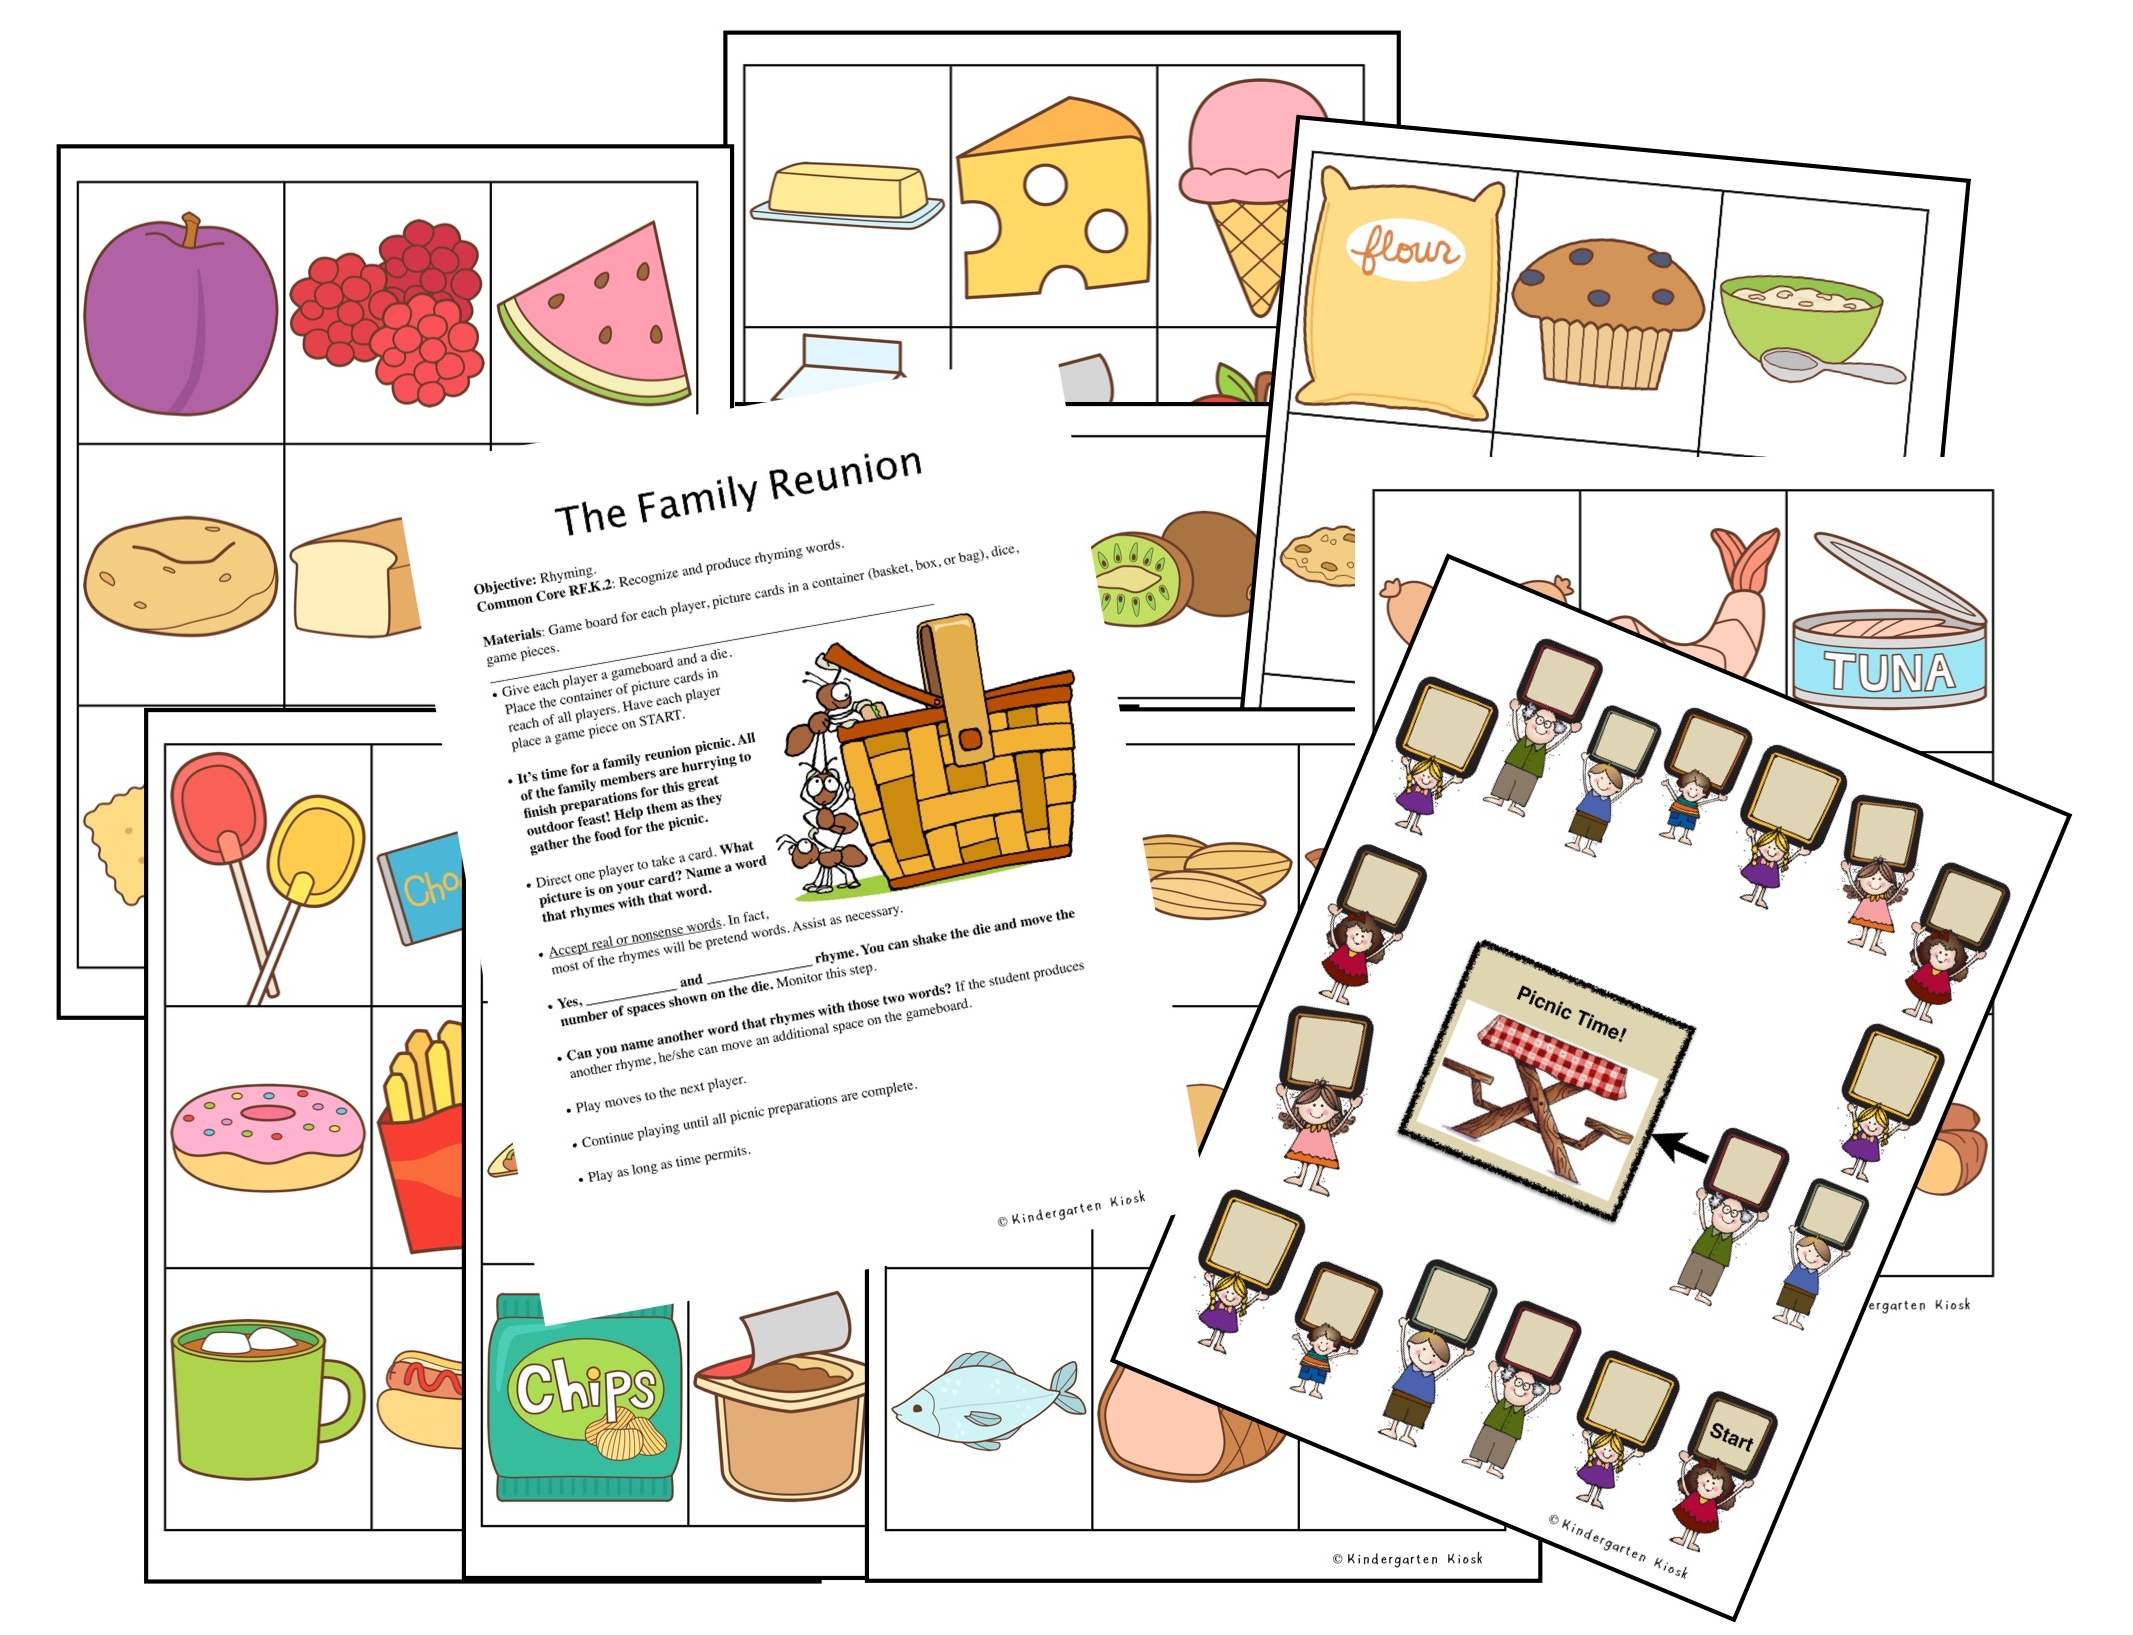 The game Family Reunion allows students to practice rhyming words as they pack the basket for a picnic.